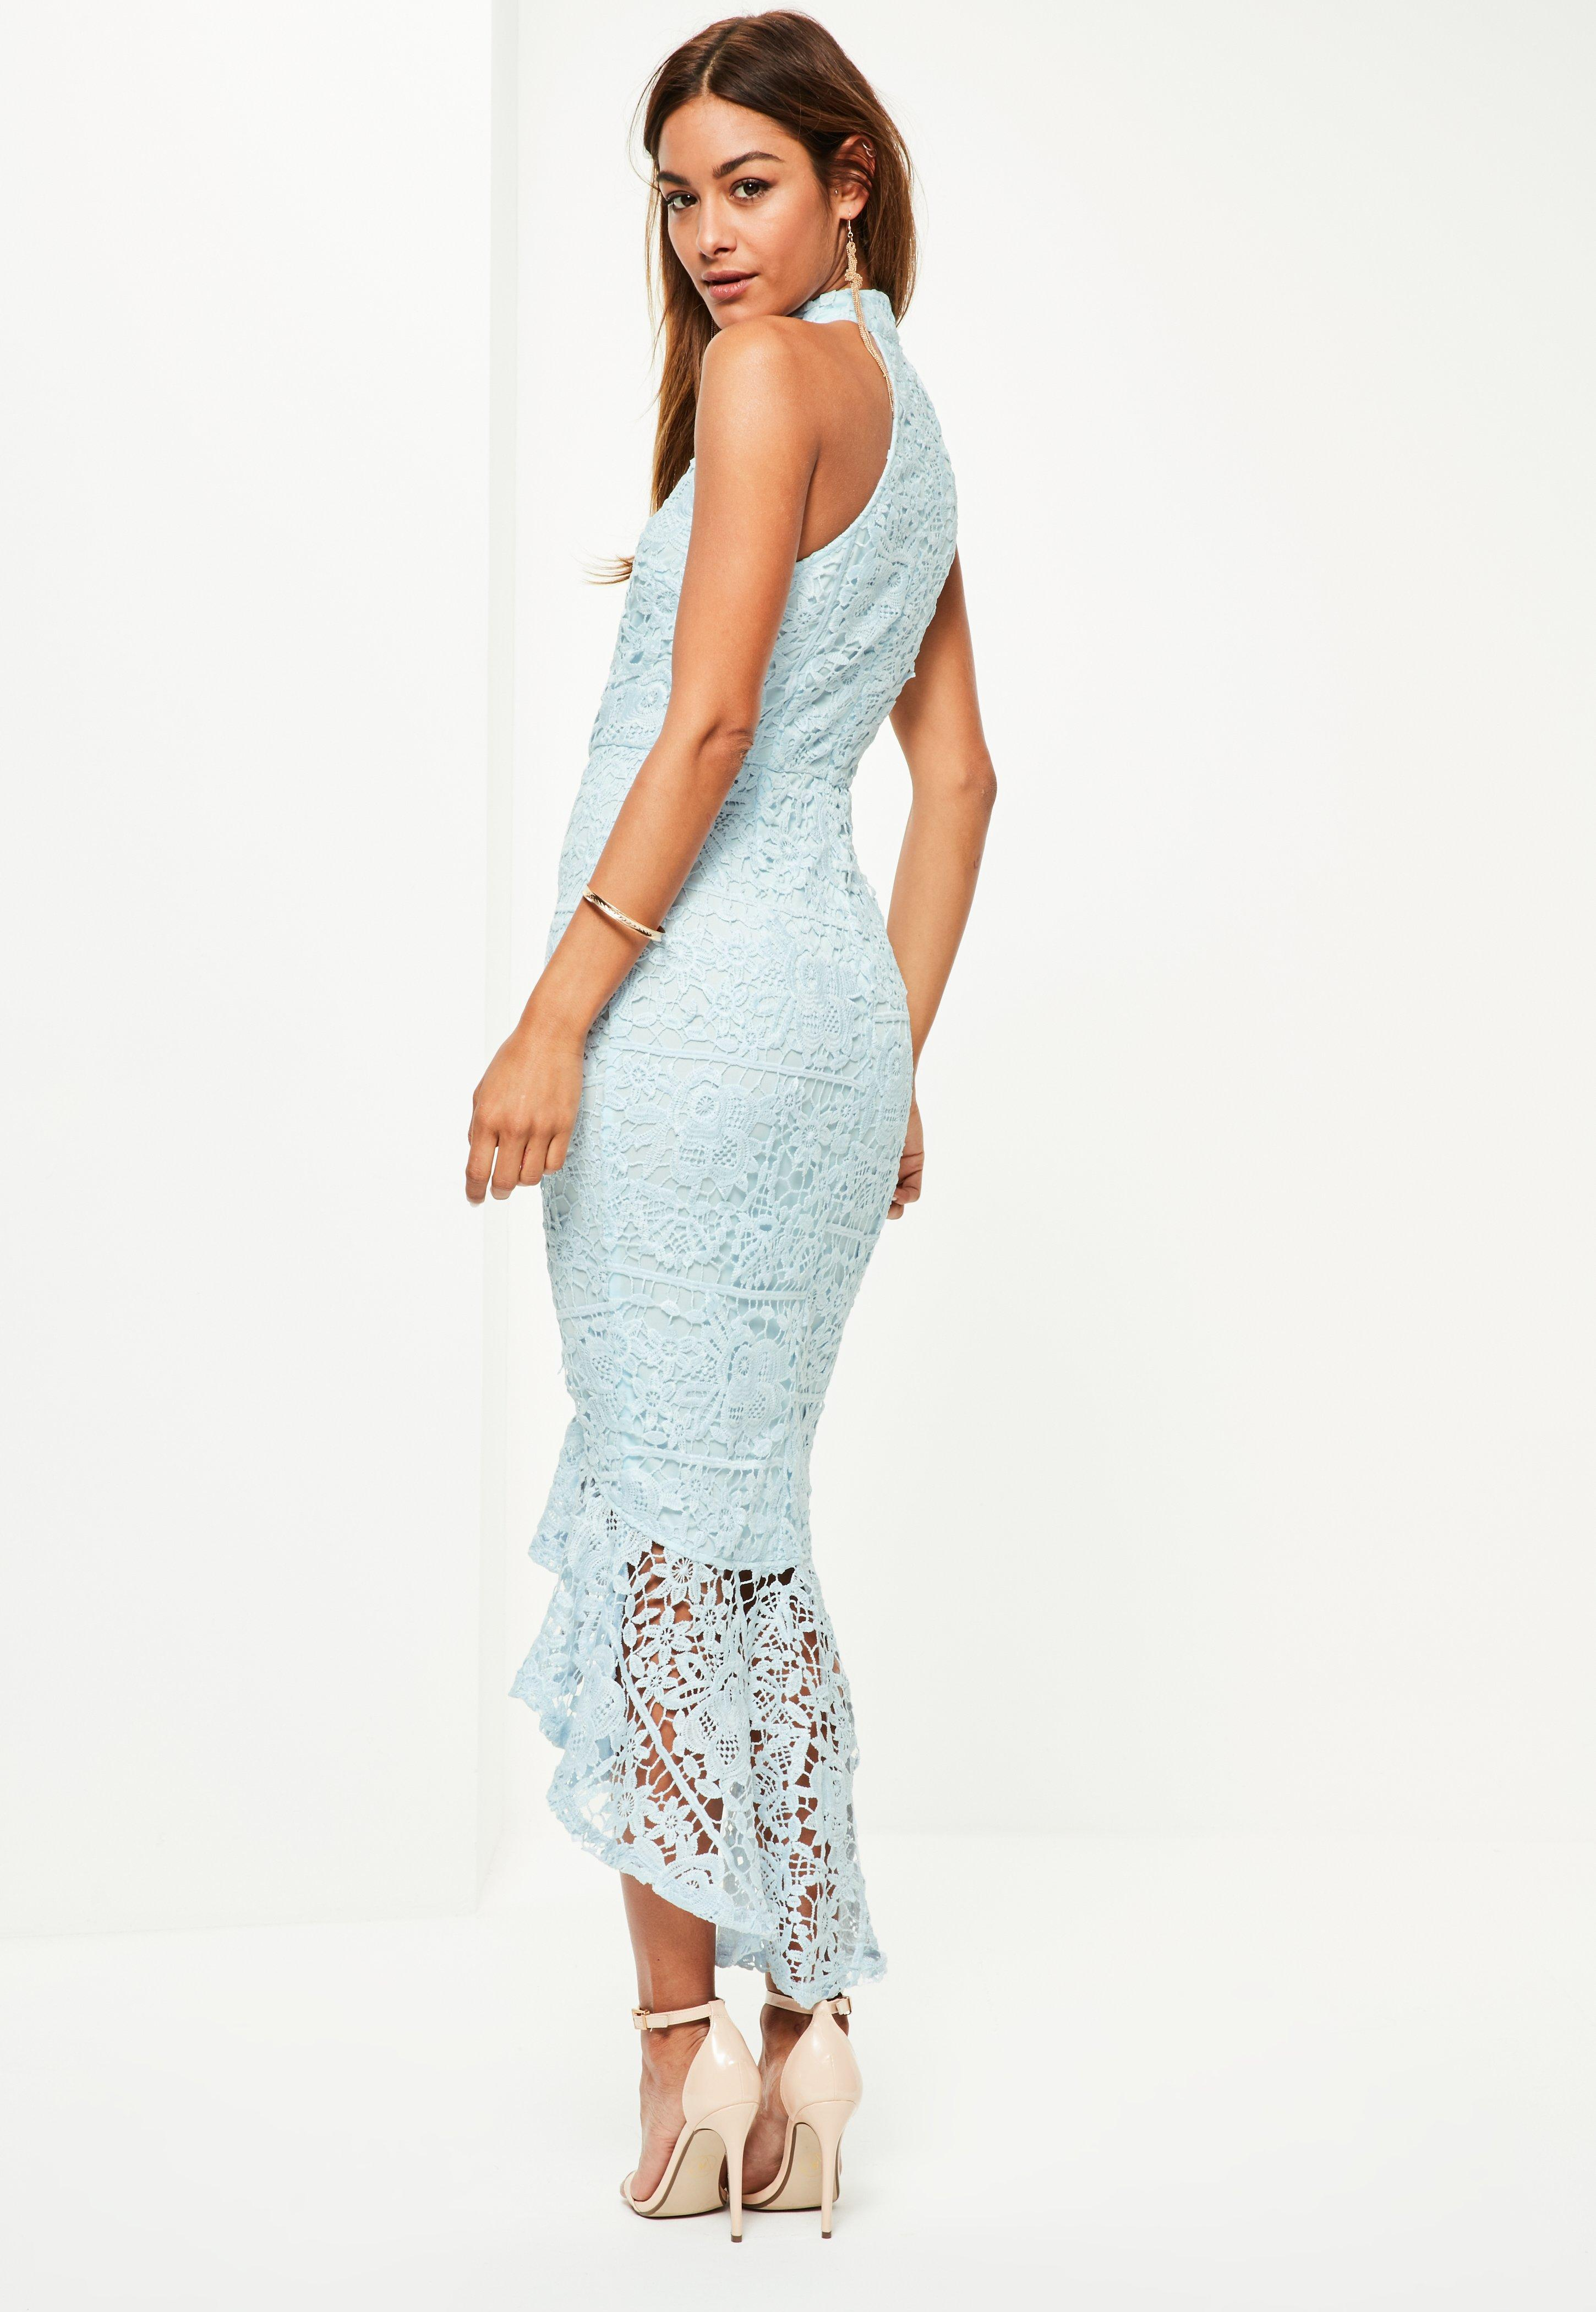 c1aca989f5c5 Missguided Blue Lace High Neck Fishtail Midi Dress in Blue - Lyst